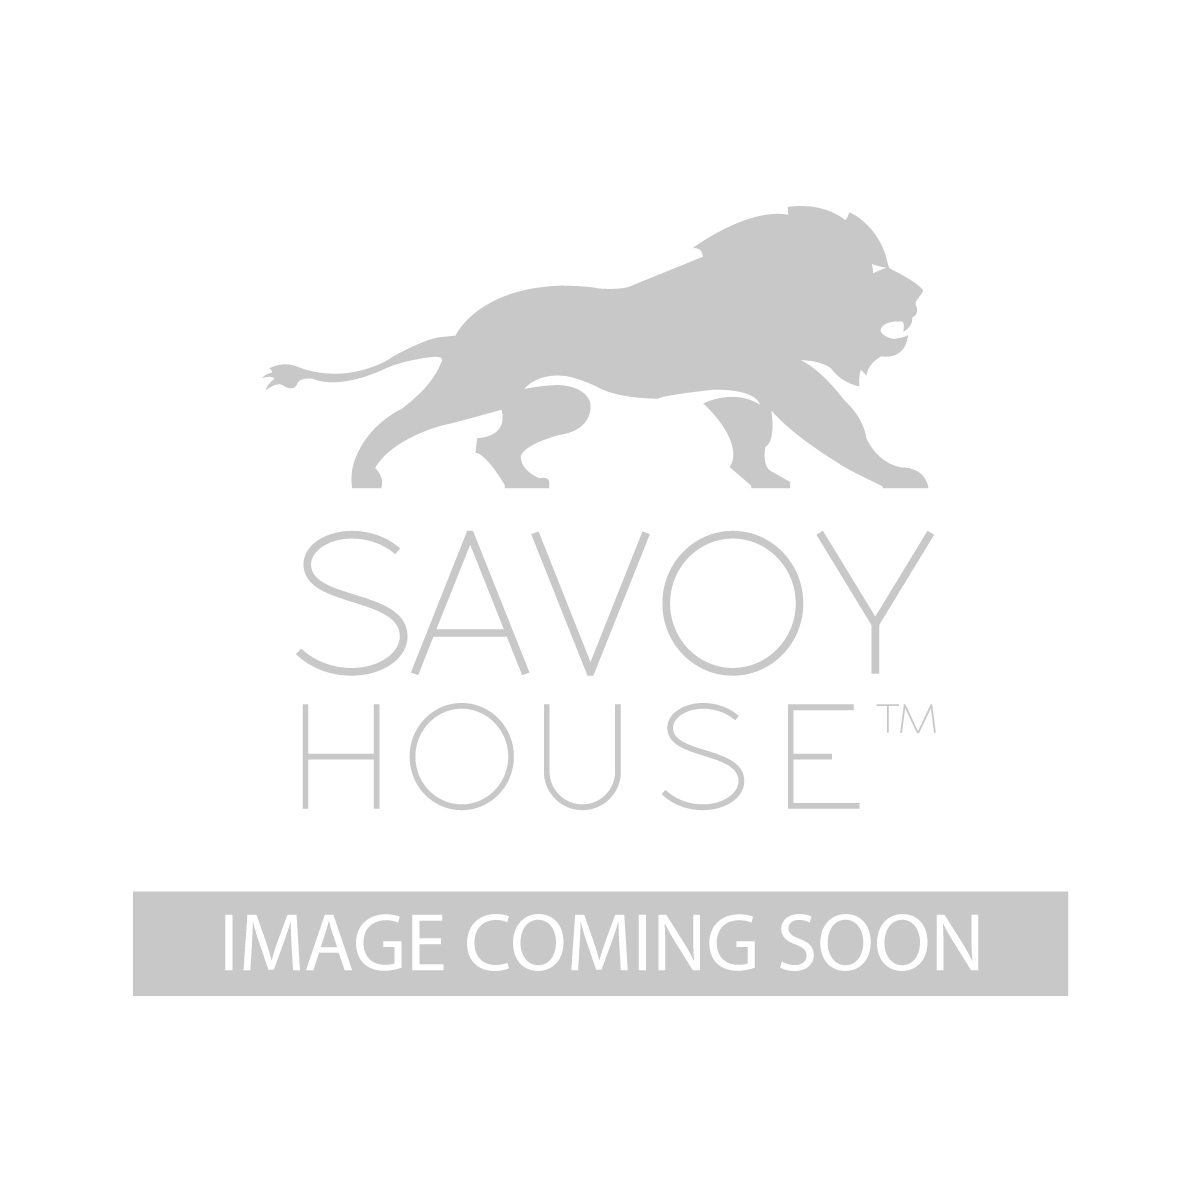 Ceiling fans by savoy house vinton 8 light air ionizing fan dlier arubaitofo Gallery